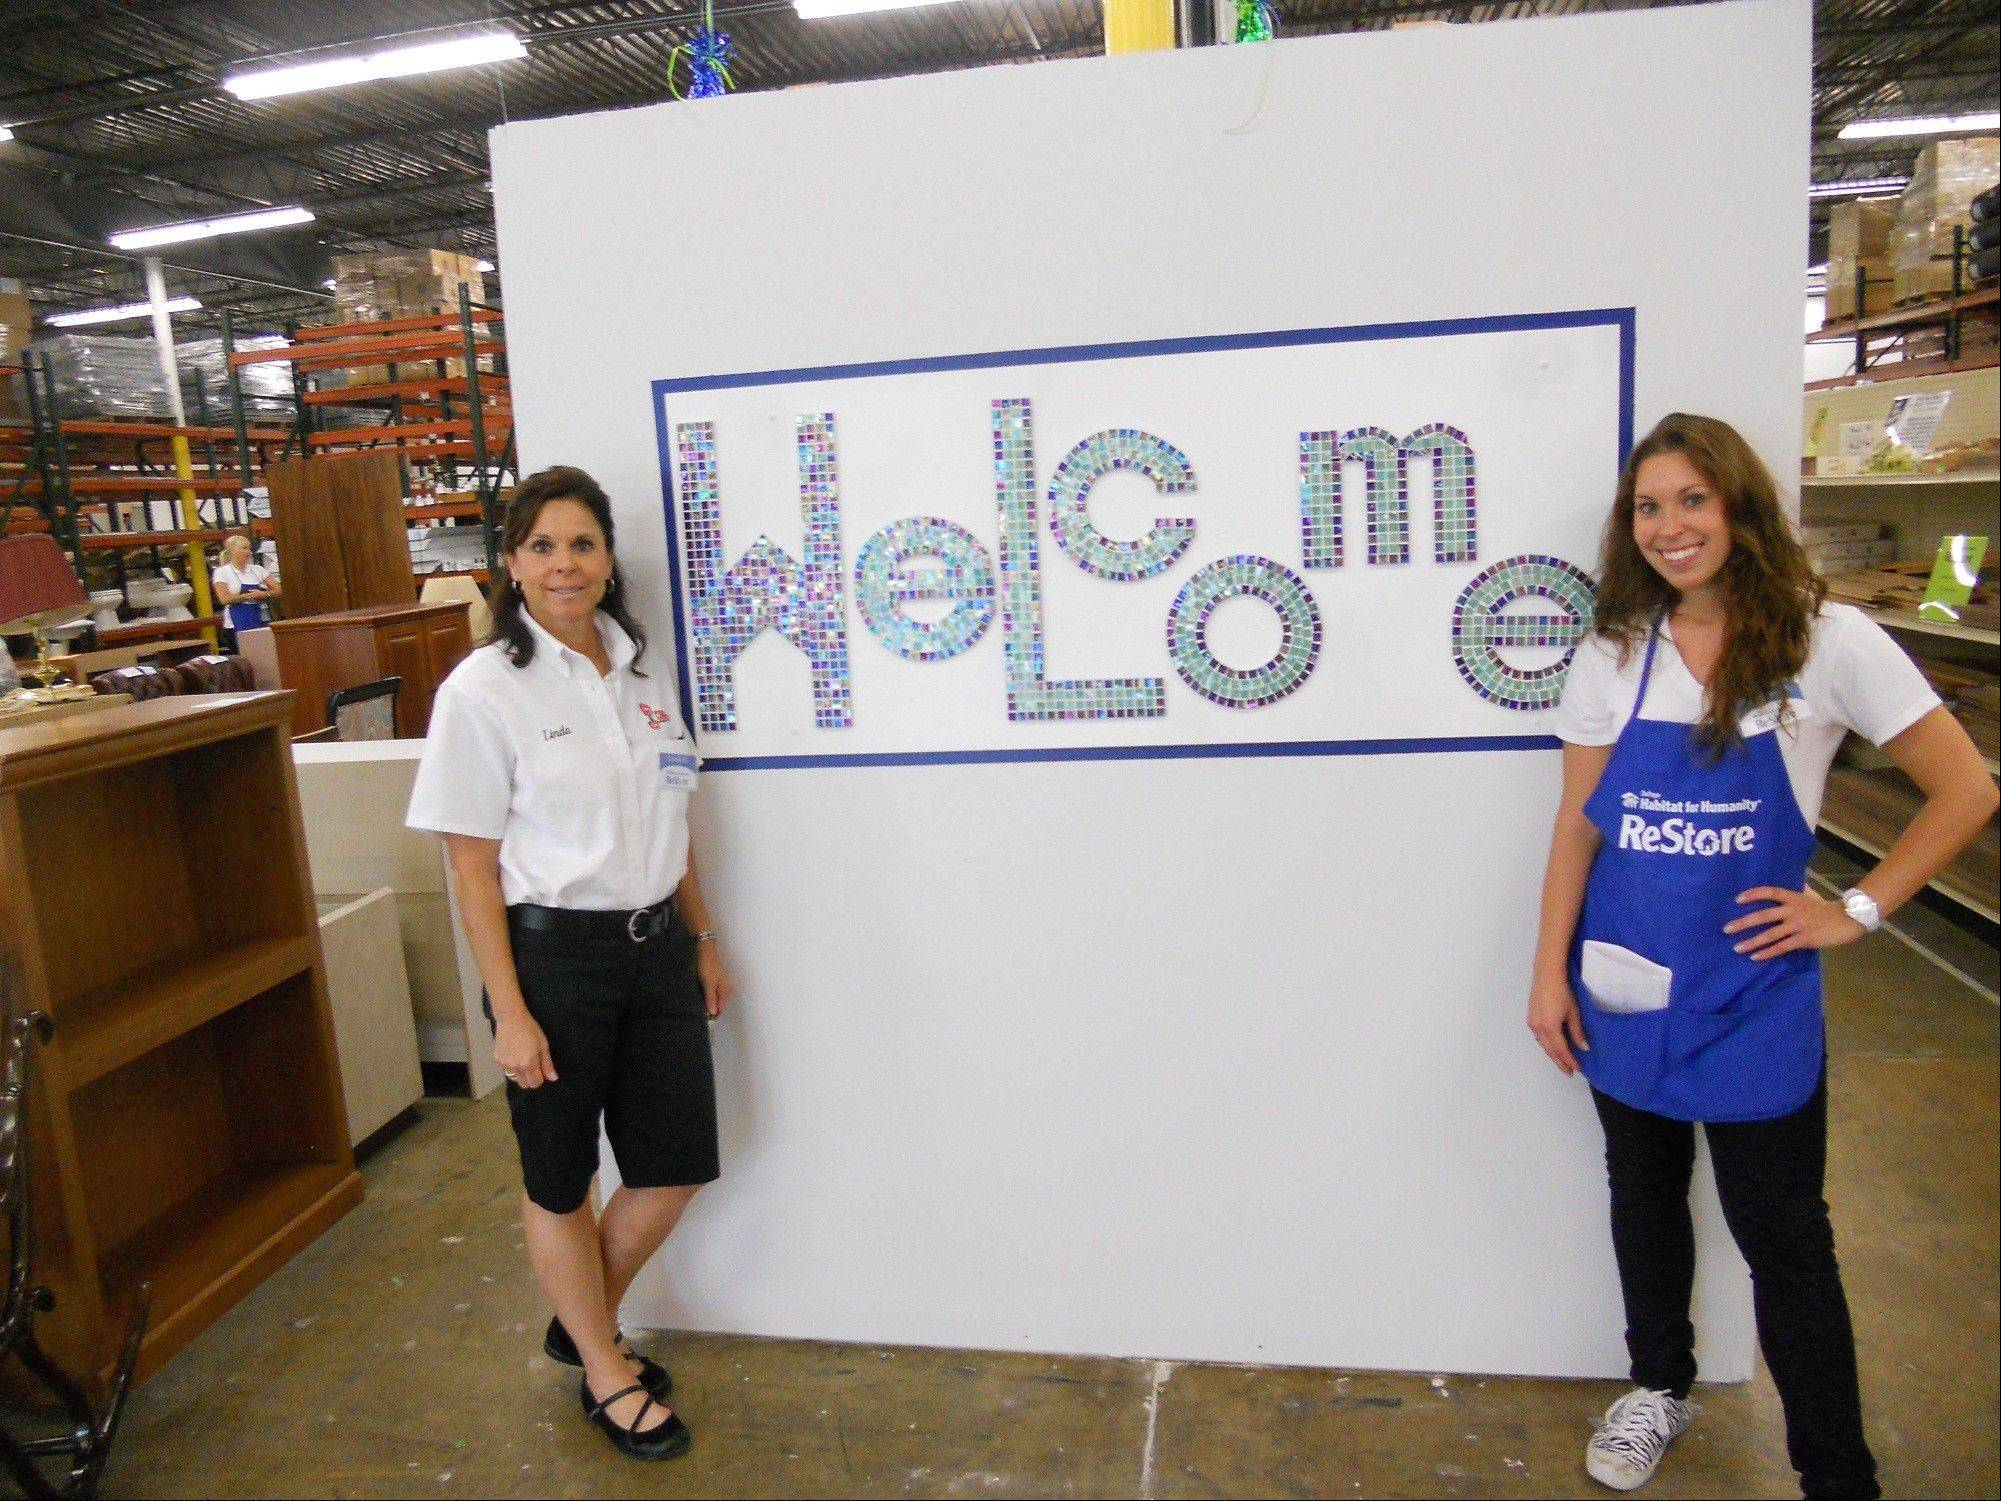 Linda DiStefano, left, and her daughter, Vanessa, debut their mosaic-tiled welcome sign at DuPage Habitat ReStore in Addison.